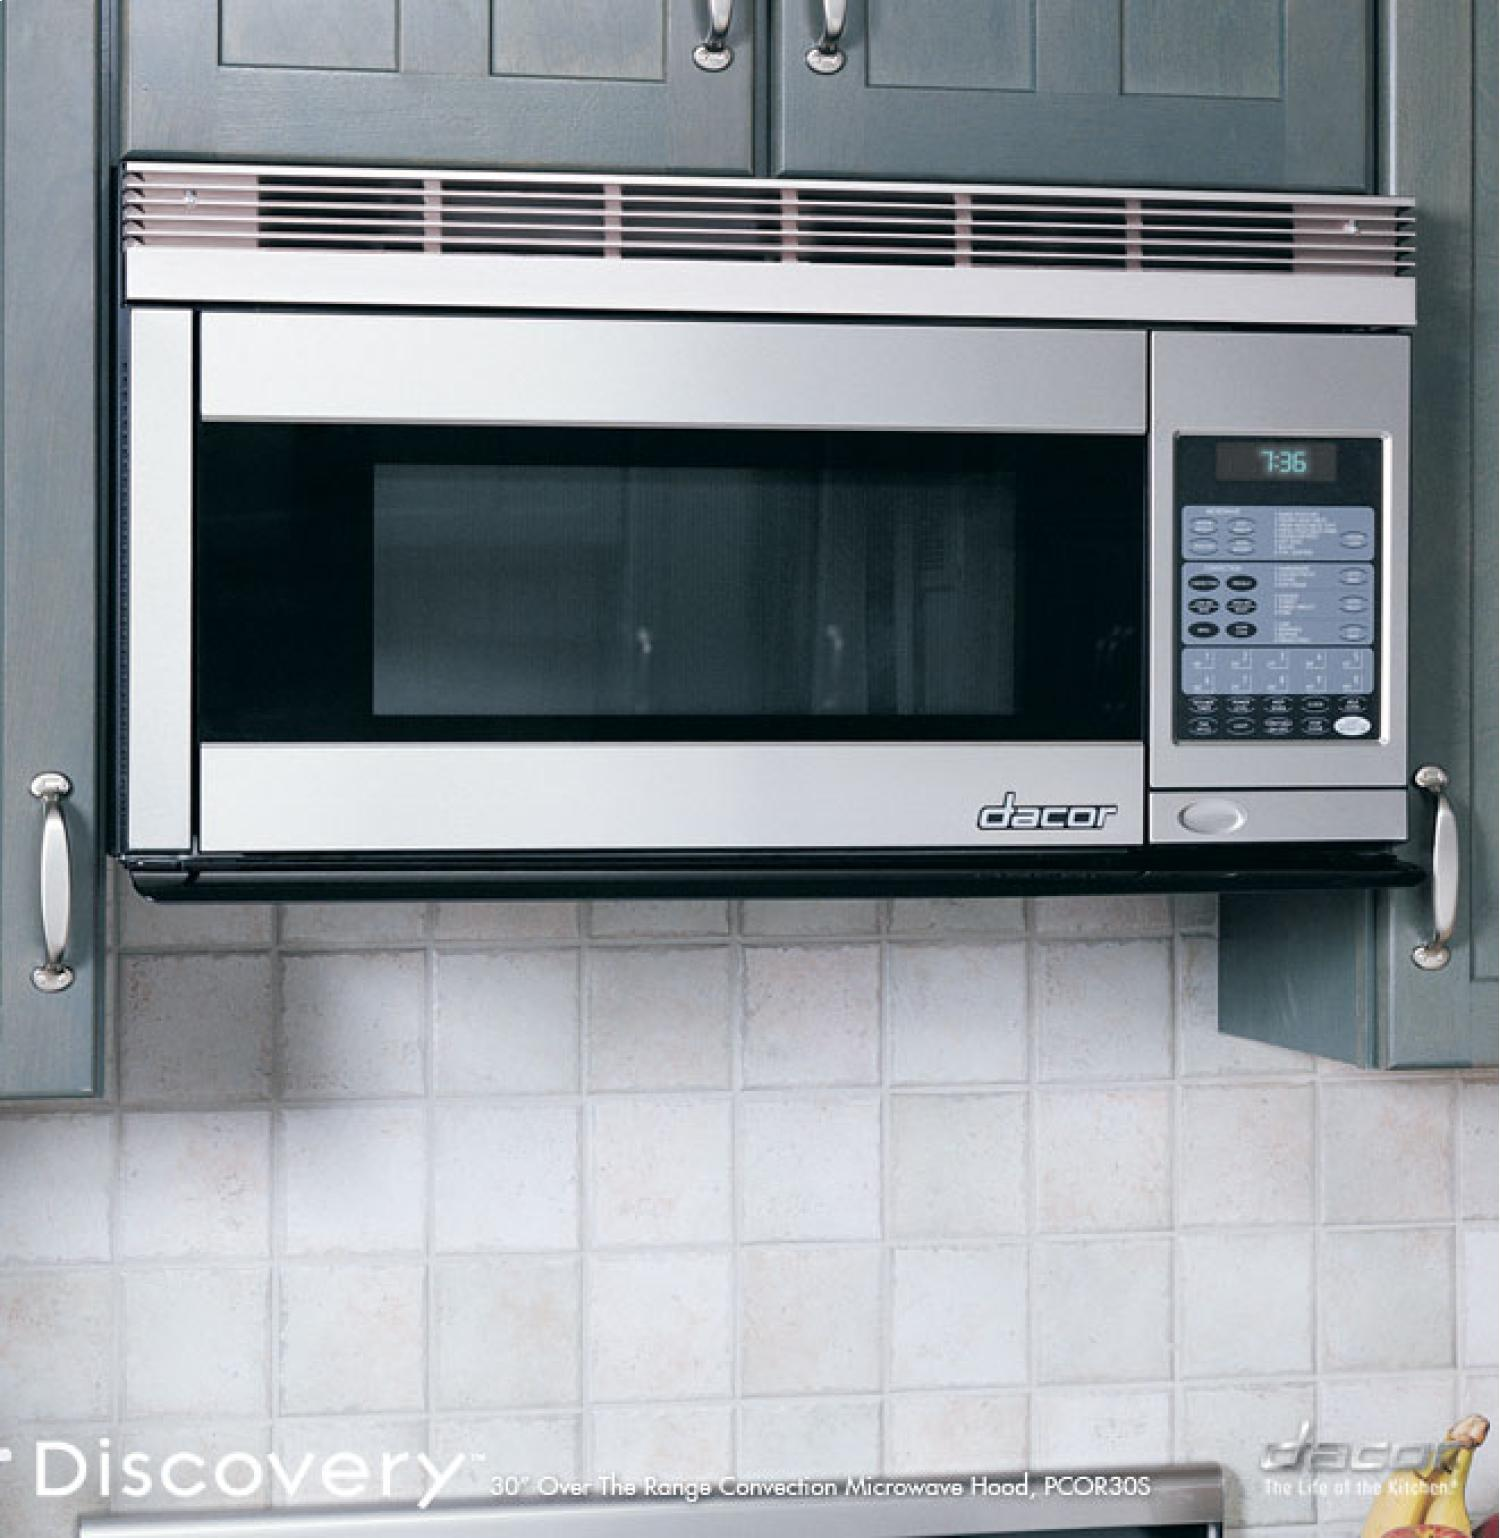 Pcor30 Dacor Pcor30 Discovery Over The Range Microwaves